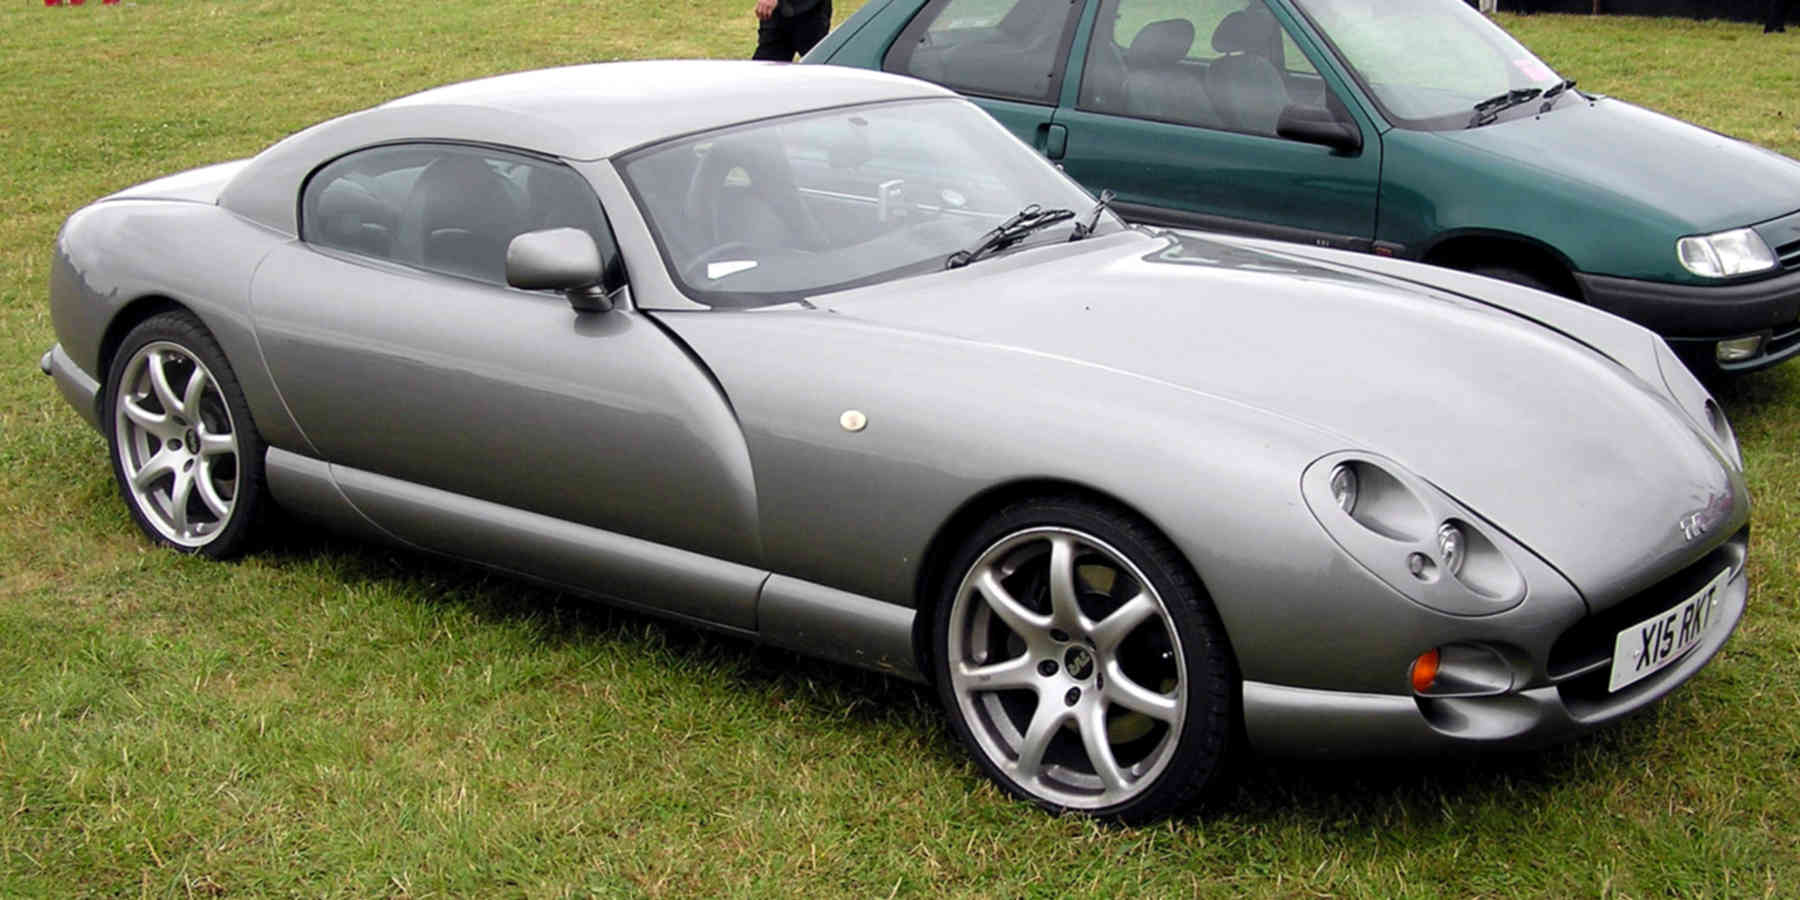 A silver TVR Cerbera in the grass